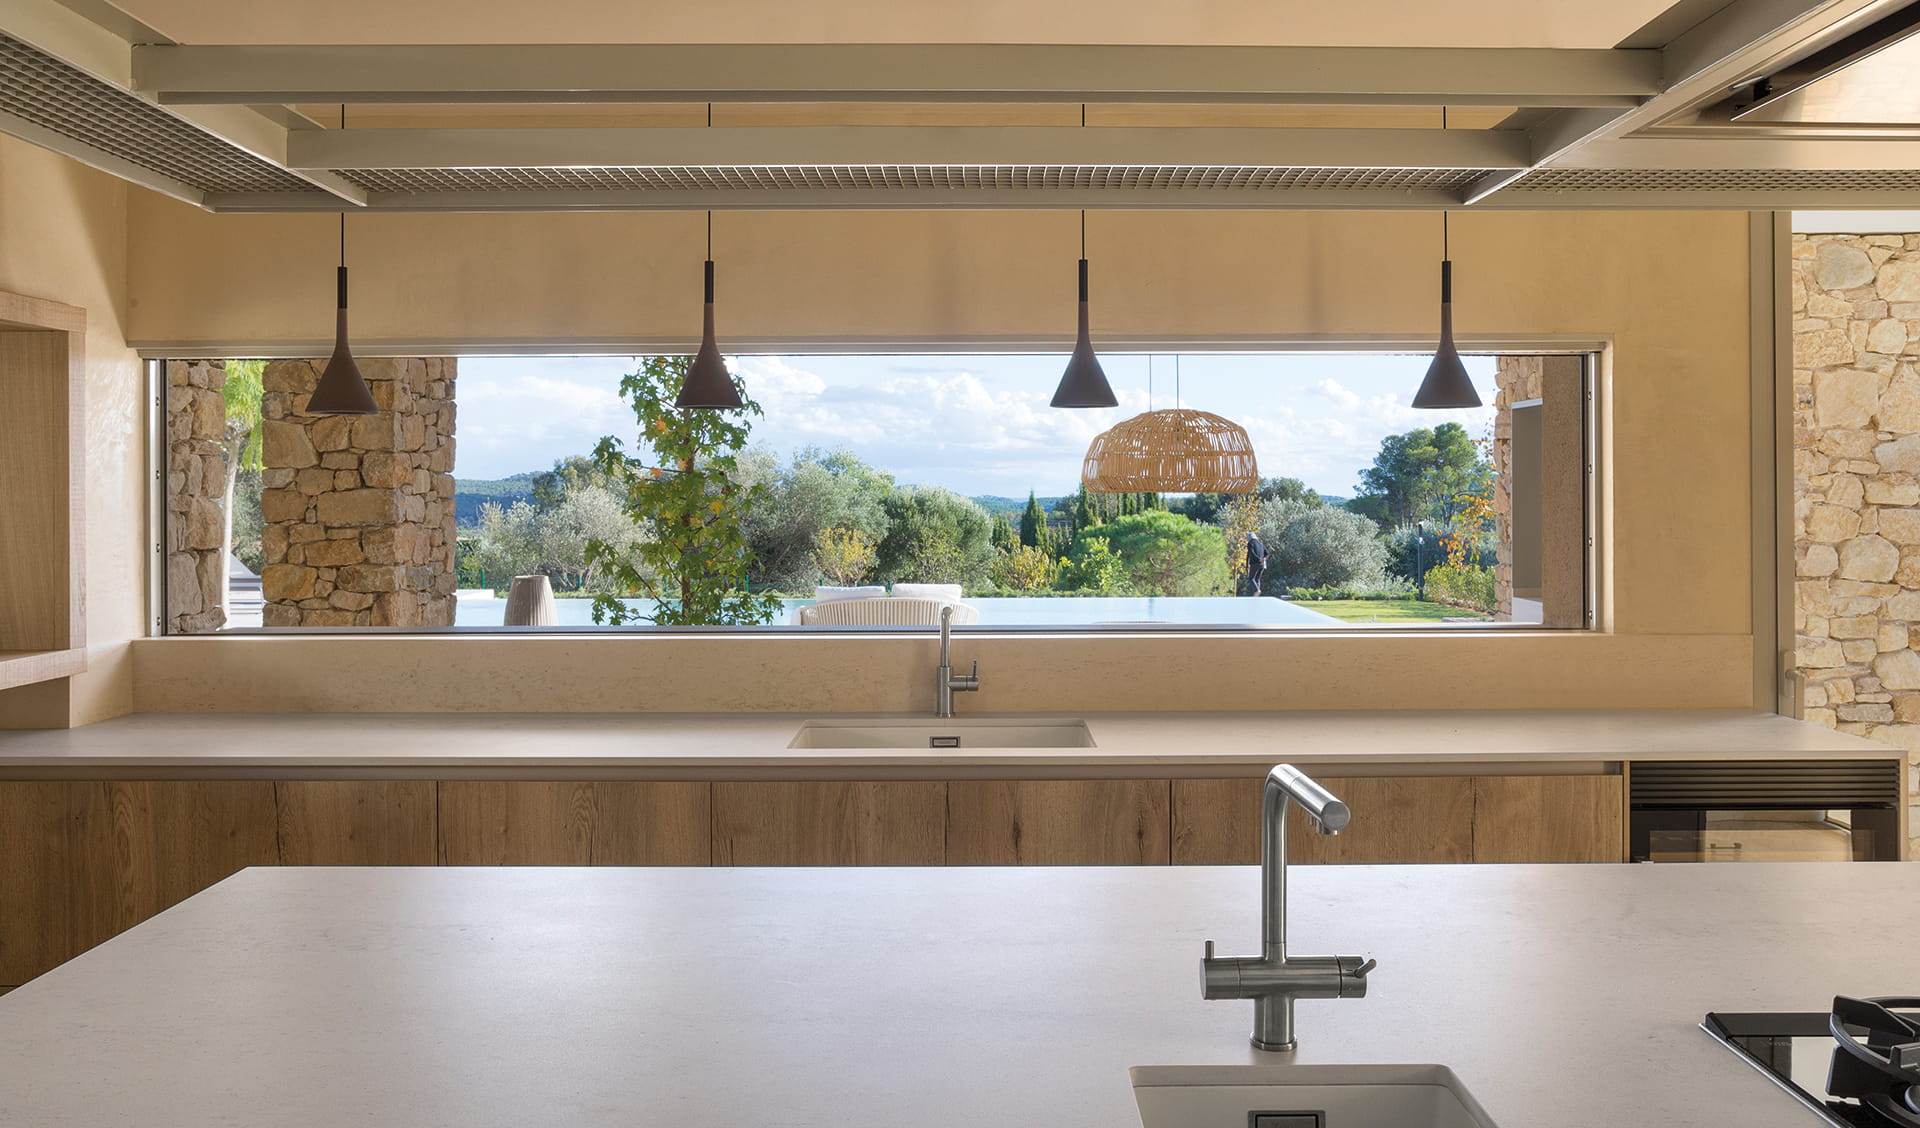 Kitchen worktop and island in light colours and wood